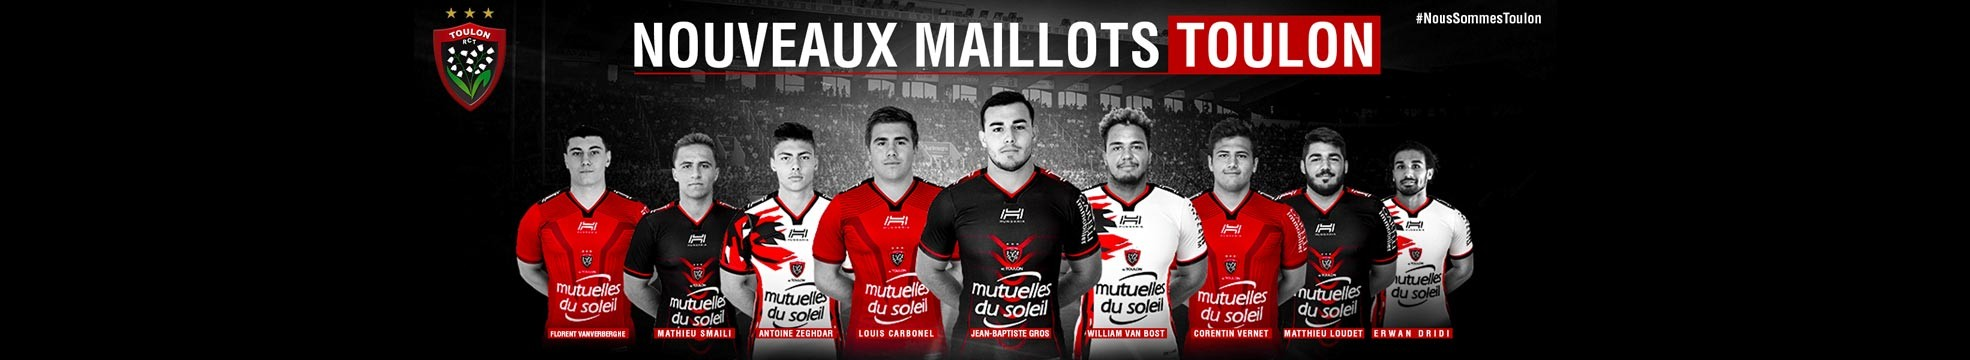 maillots rugby toulon